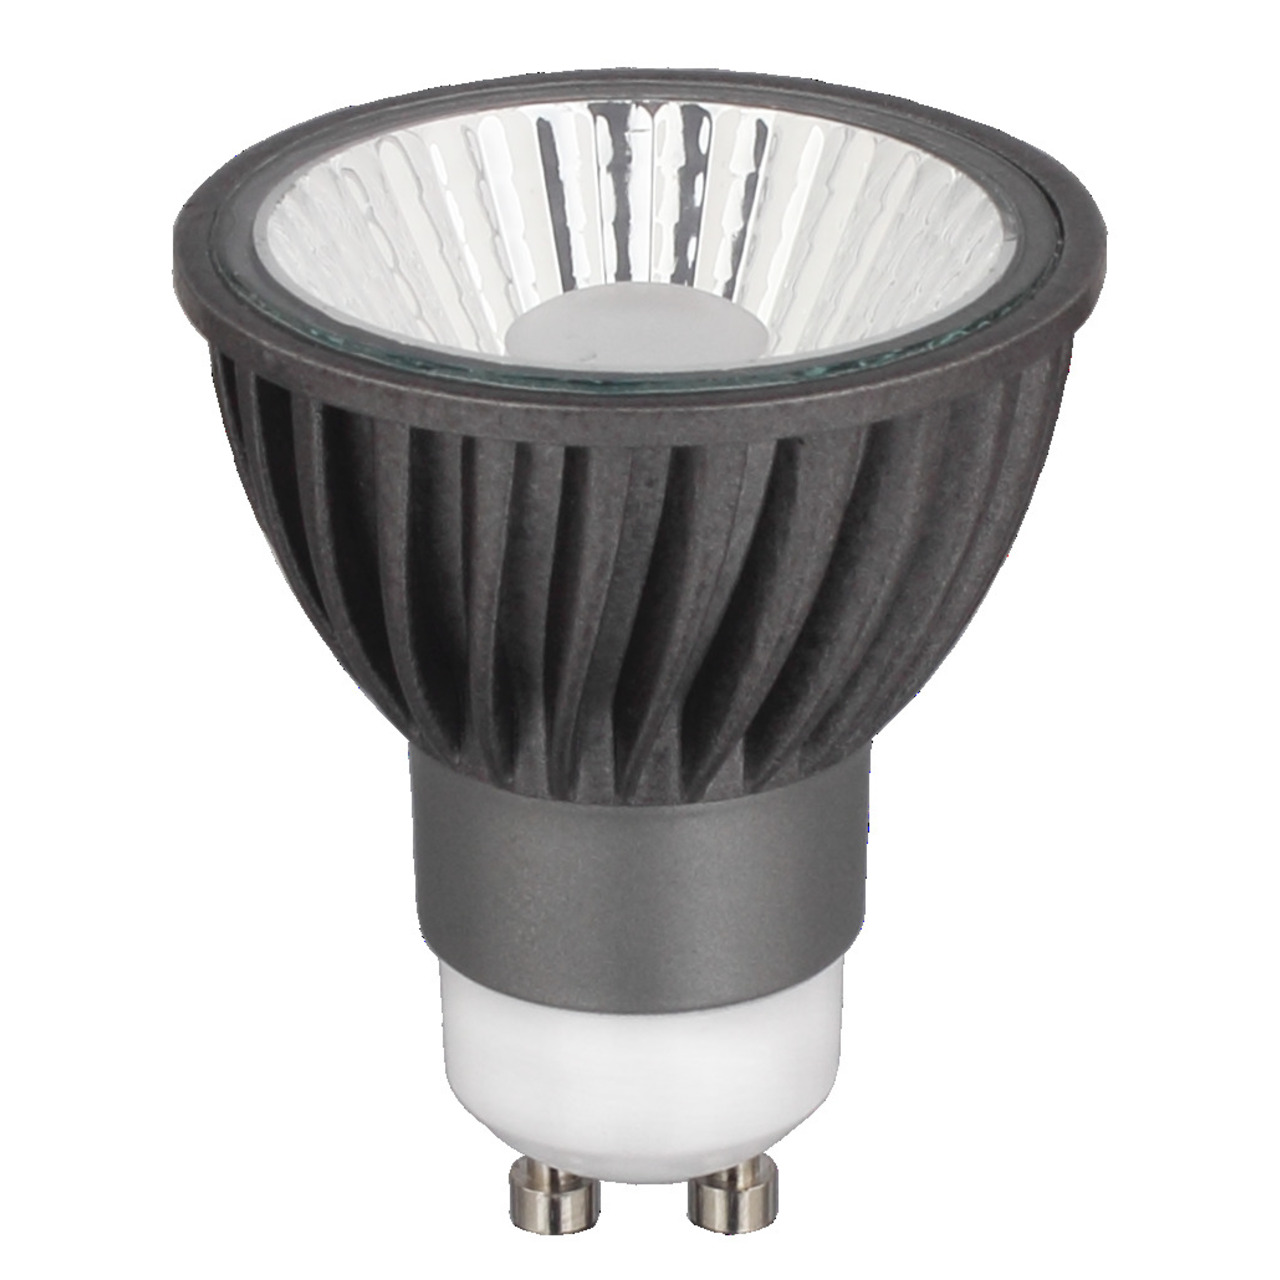 CV-Lighting HALED III 7-W-GU10-LED-Lampe- warmweiss- dimmbar- 24-